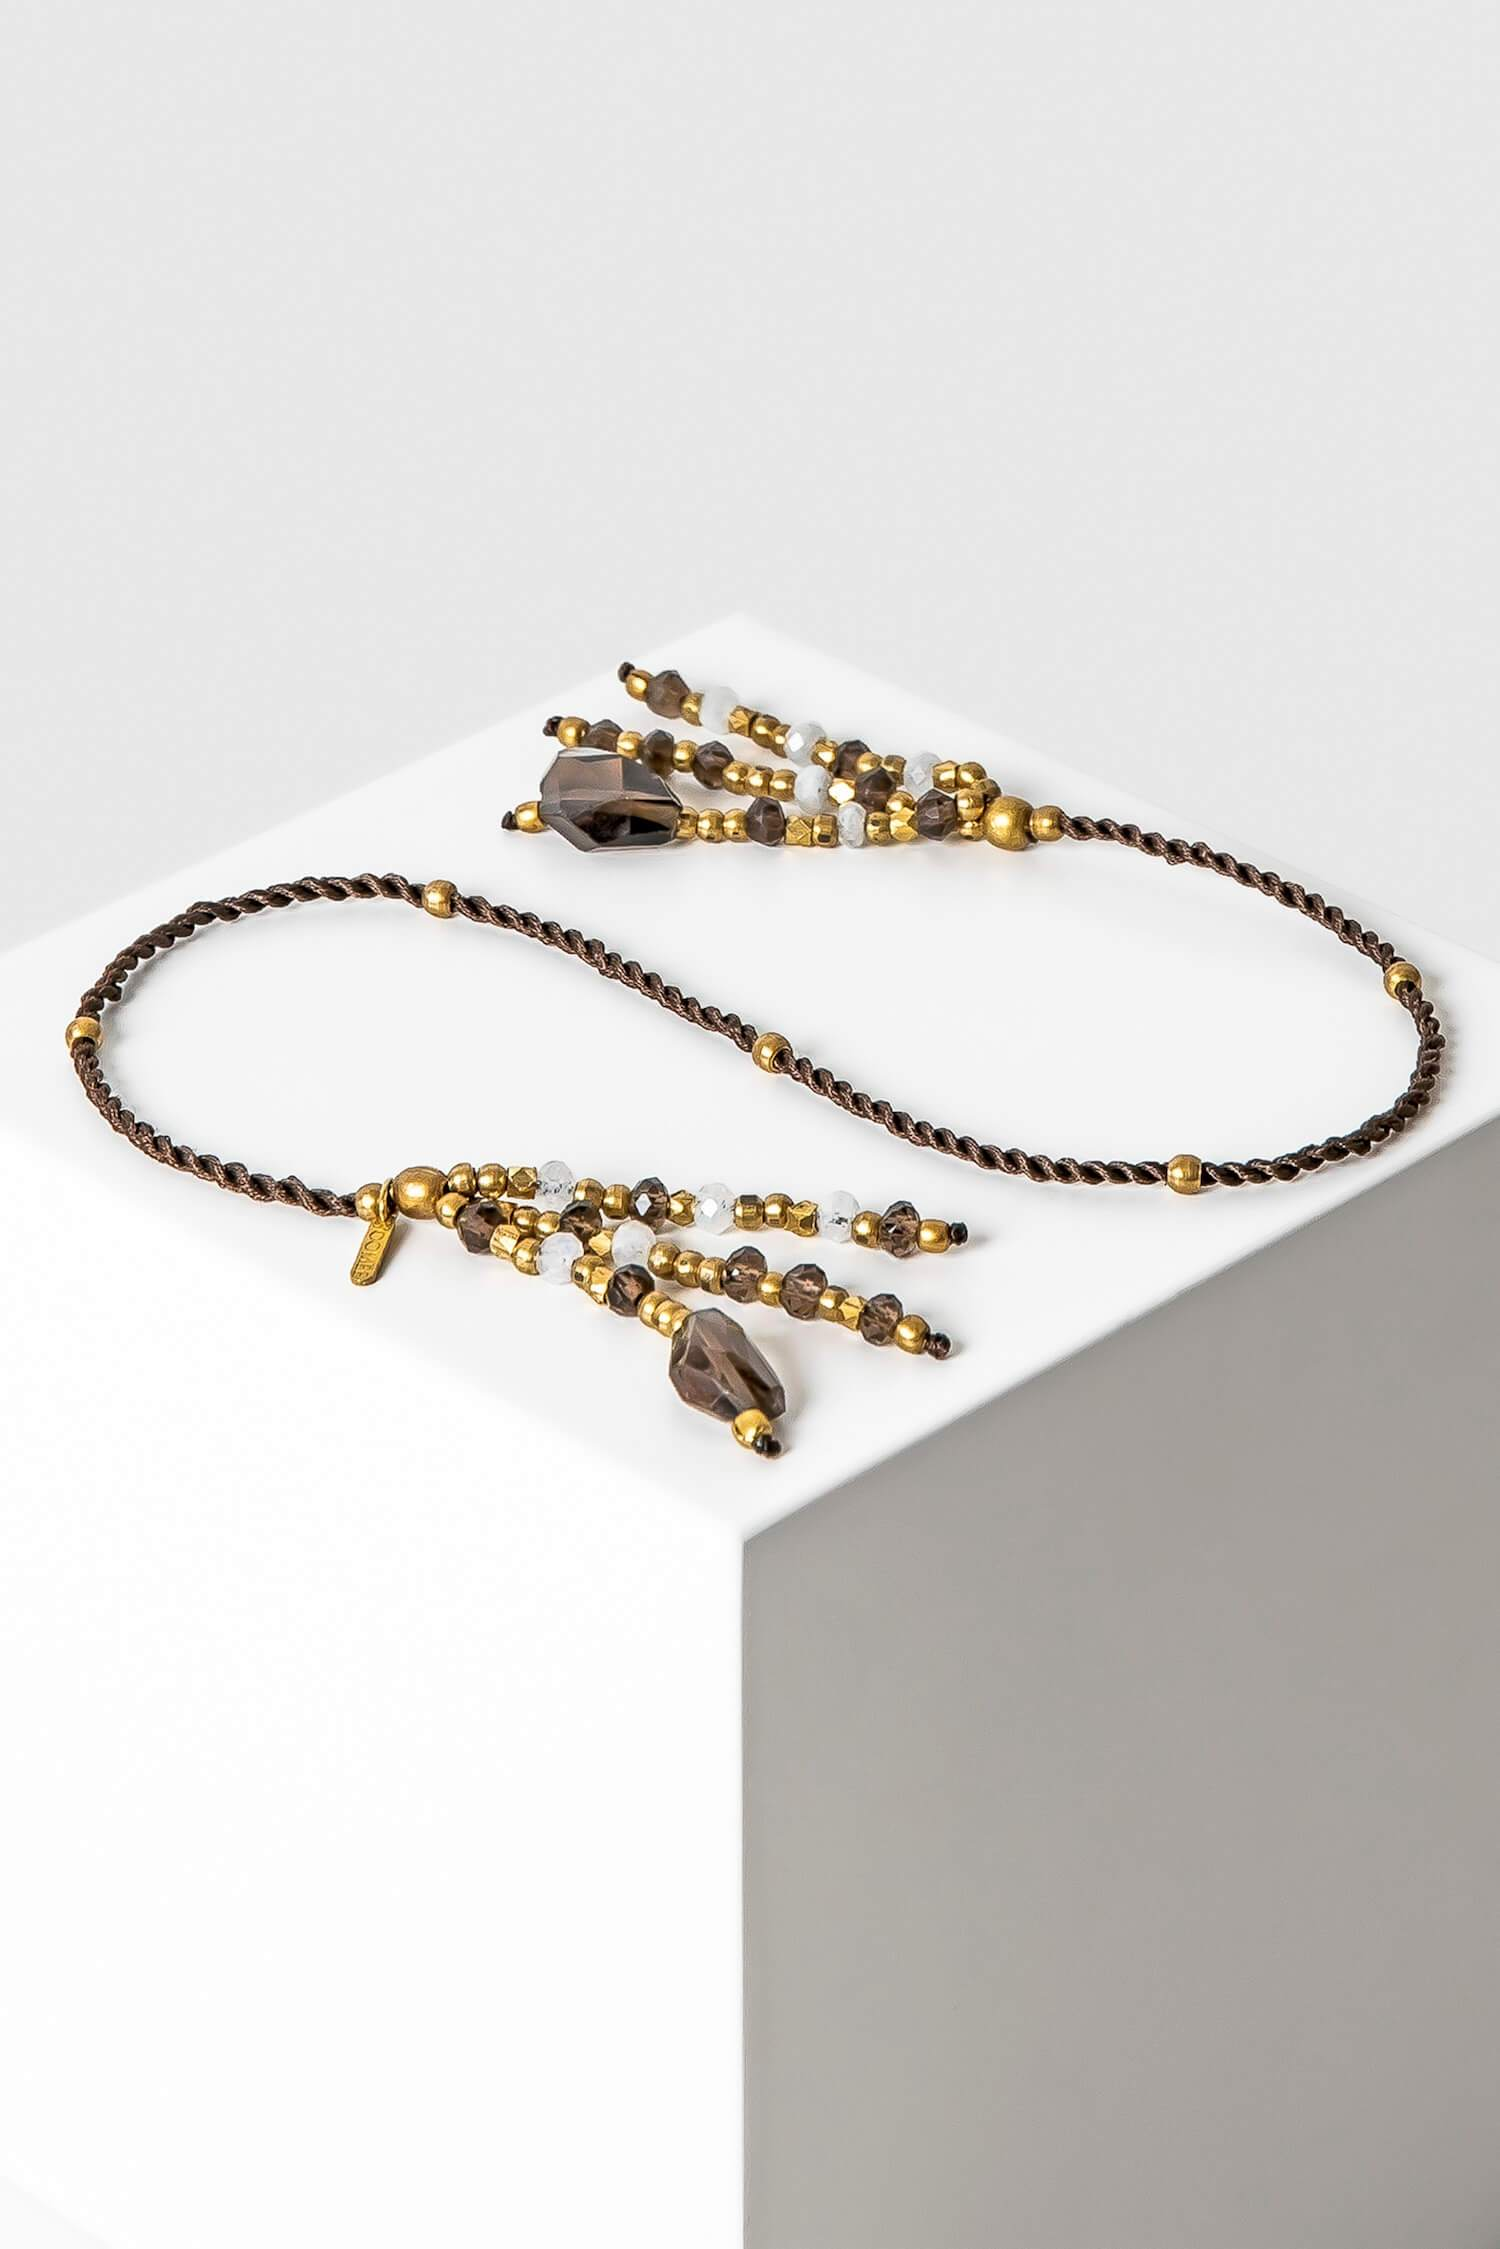 bookmark - nimdiki - stone tassels - smoky quartz